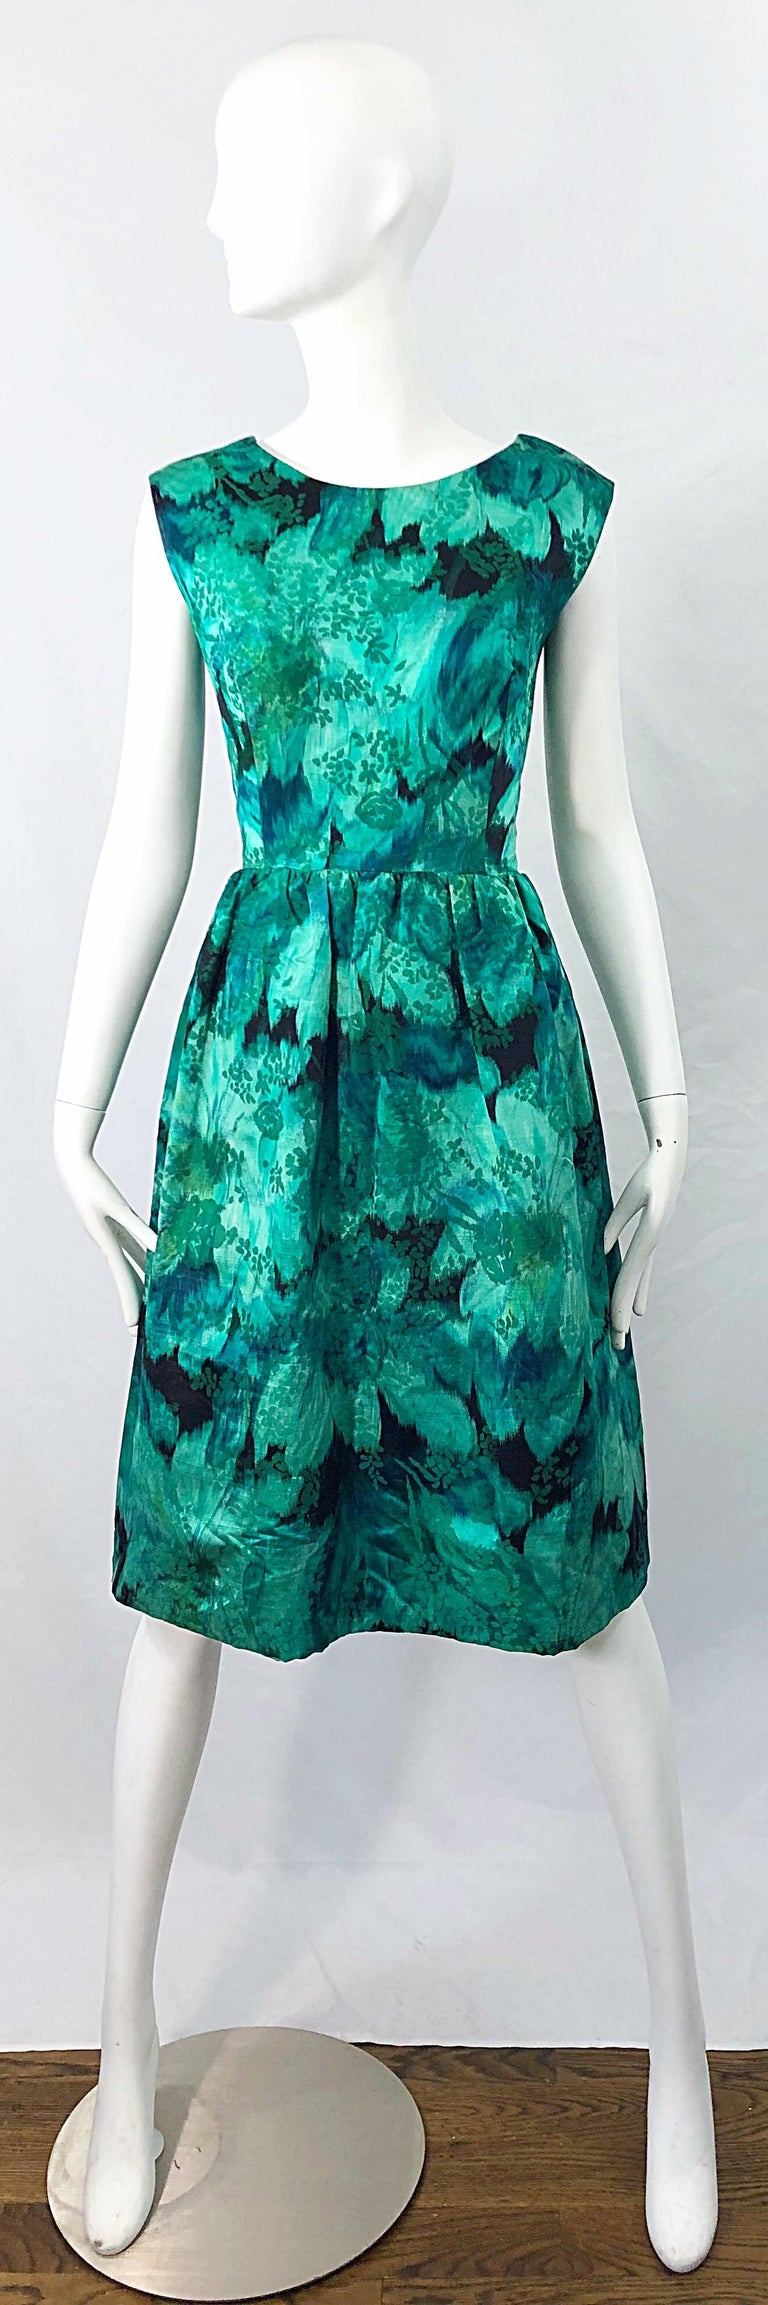 1950s Demi Couture Green Botanical Floral Silk Fit n' Flare Vintage 50s Dress For Sale 9